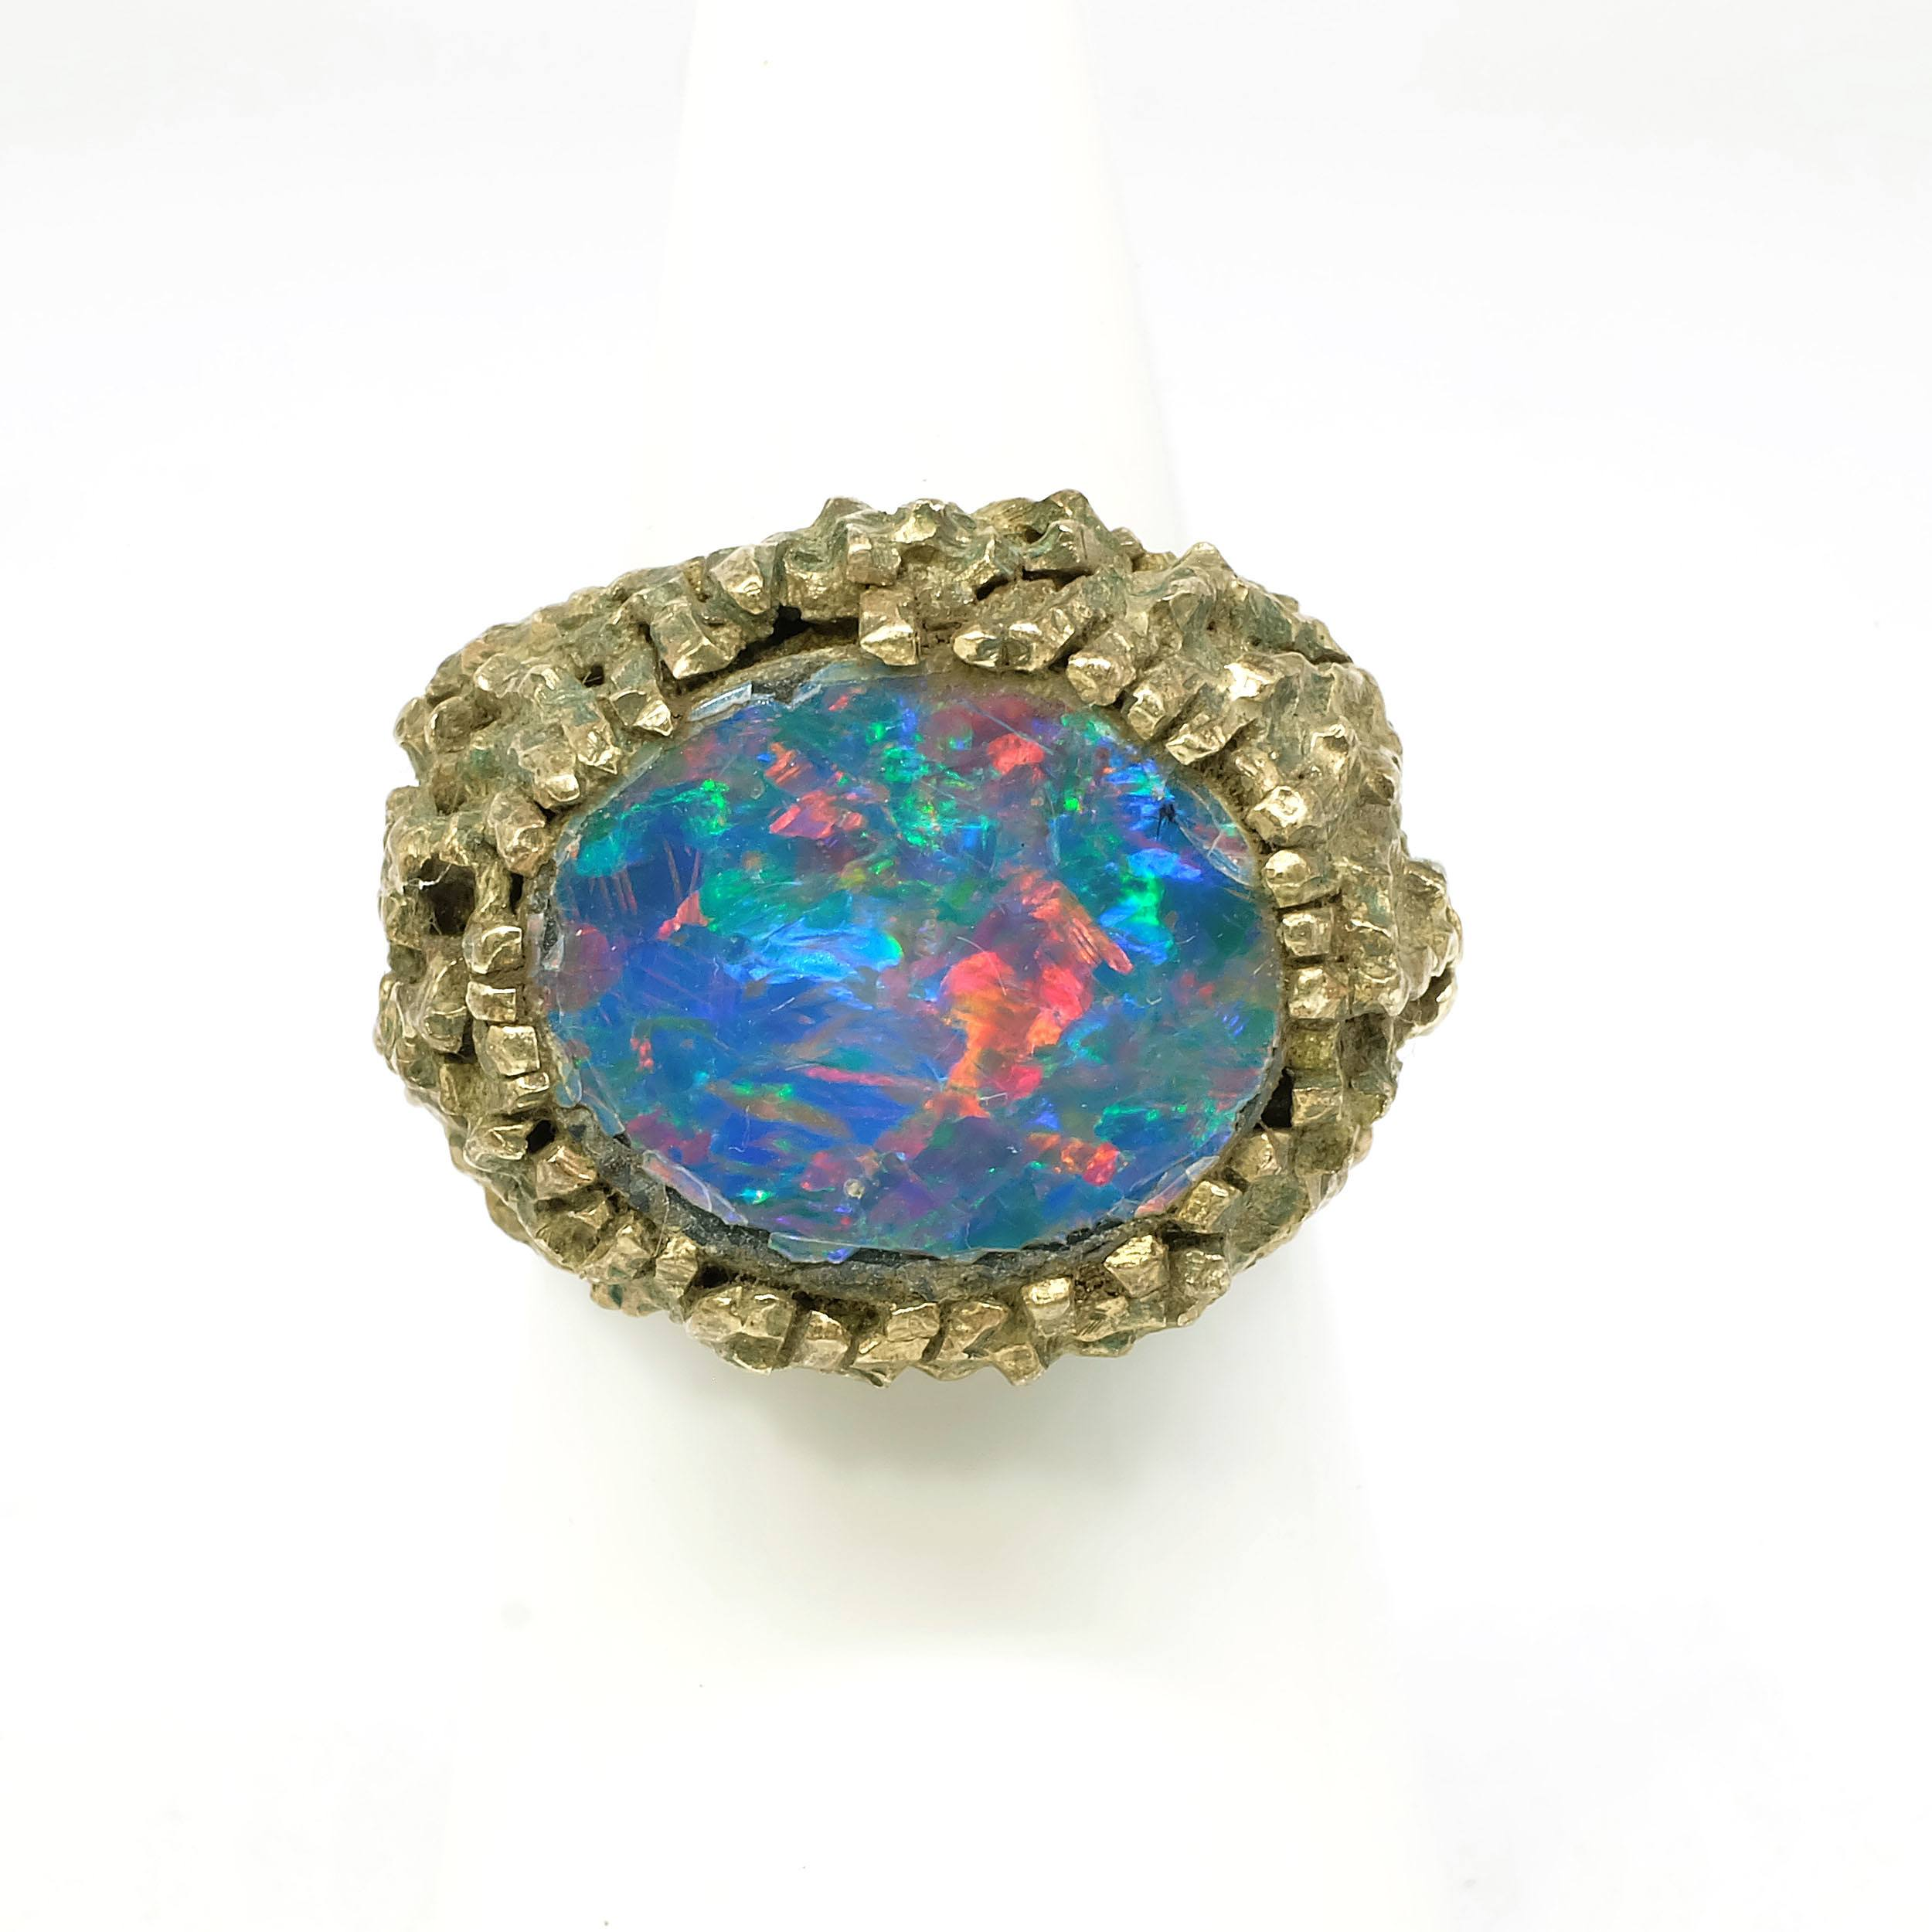 '9ct Yellow Gold Gents Signet Ring with Opal Triplet, 17g'